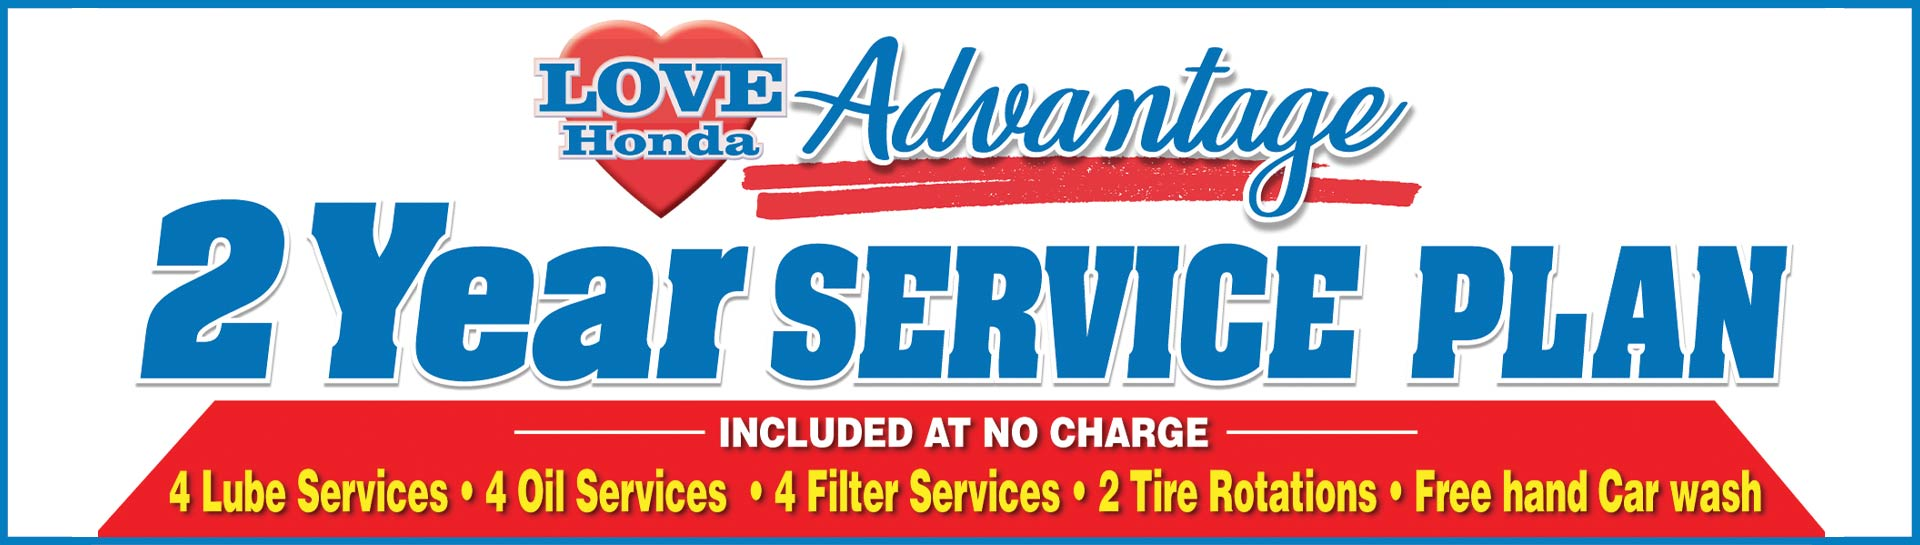 2 Year Service Plan - Love Honda - Homosassa, FL